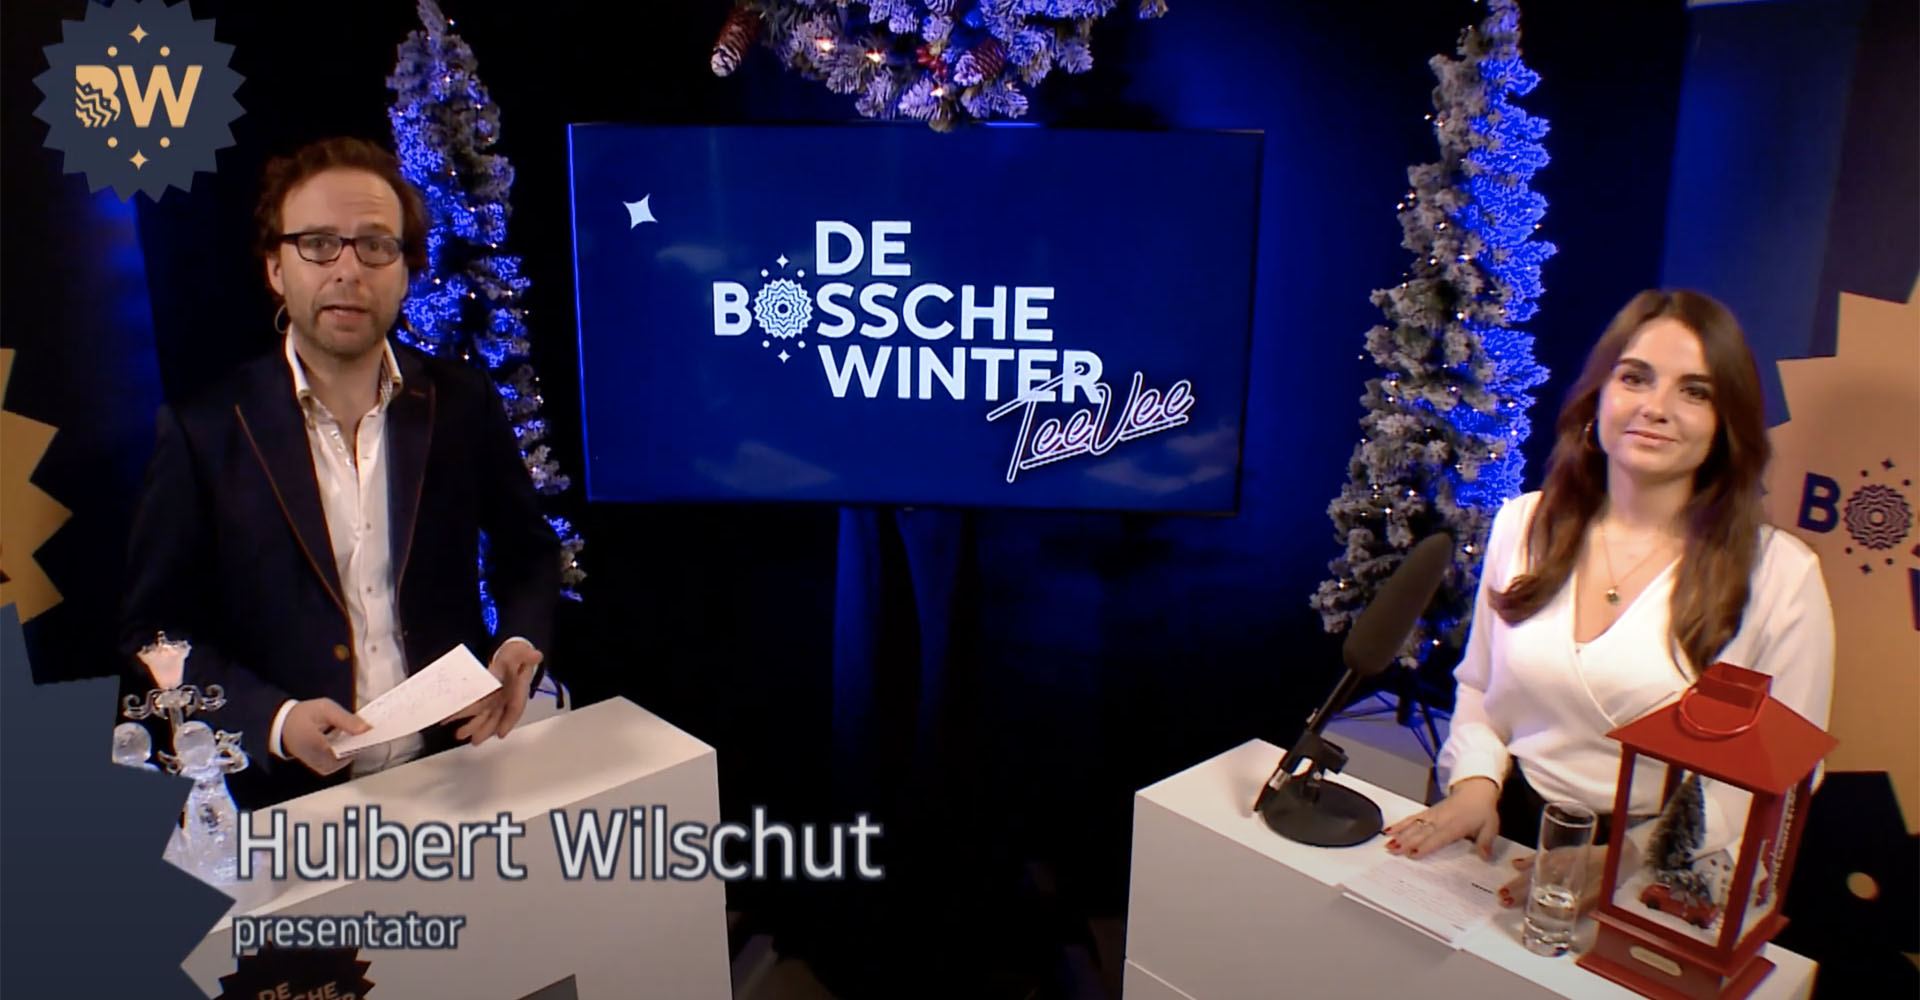 De Bossche Winter